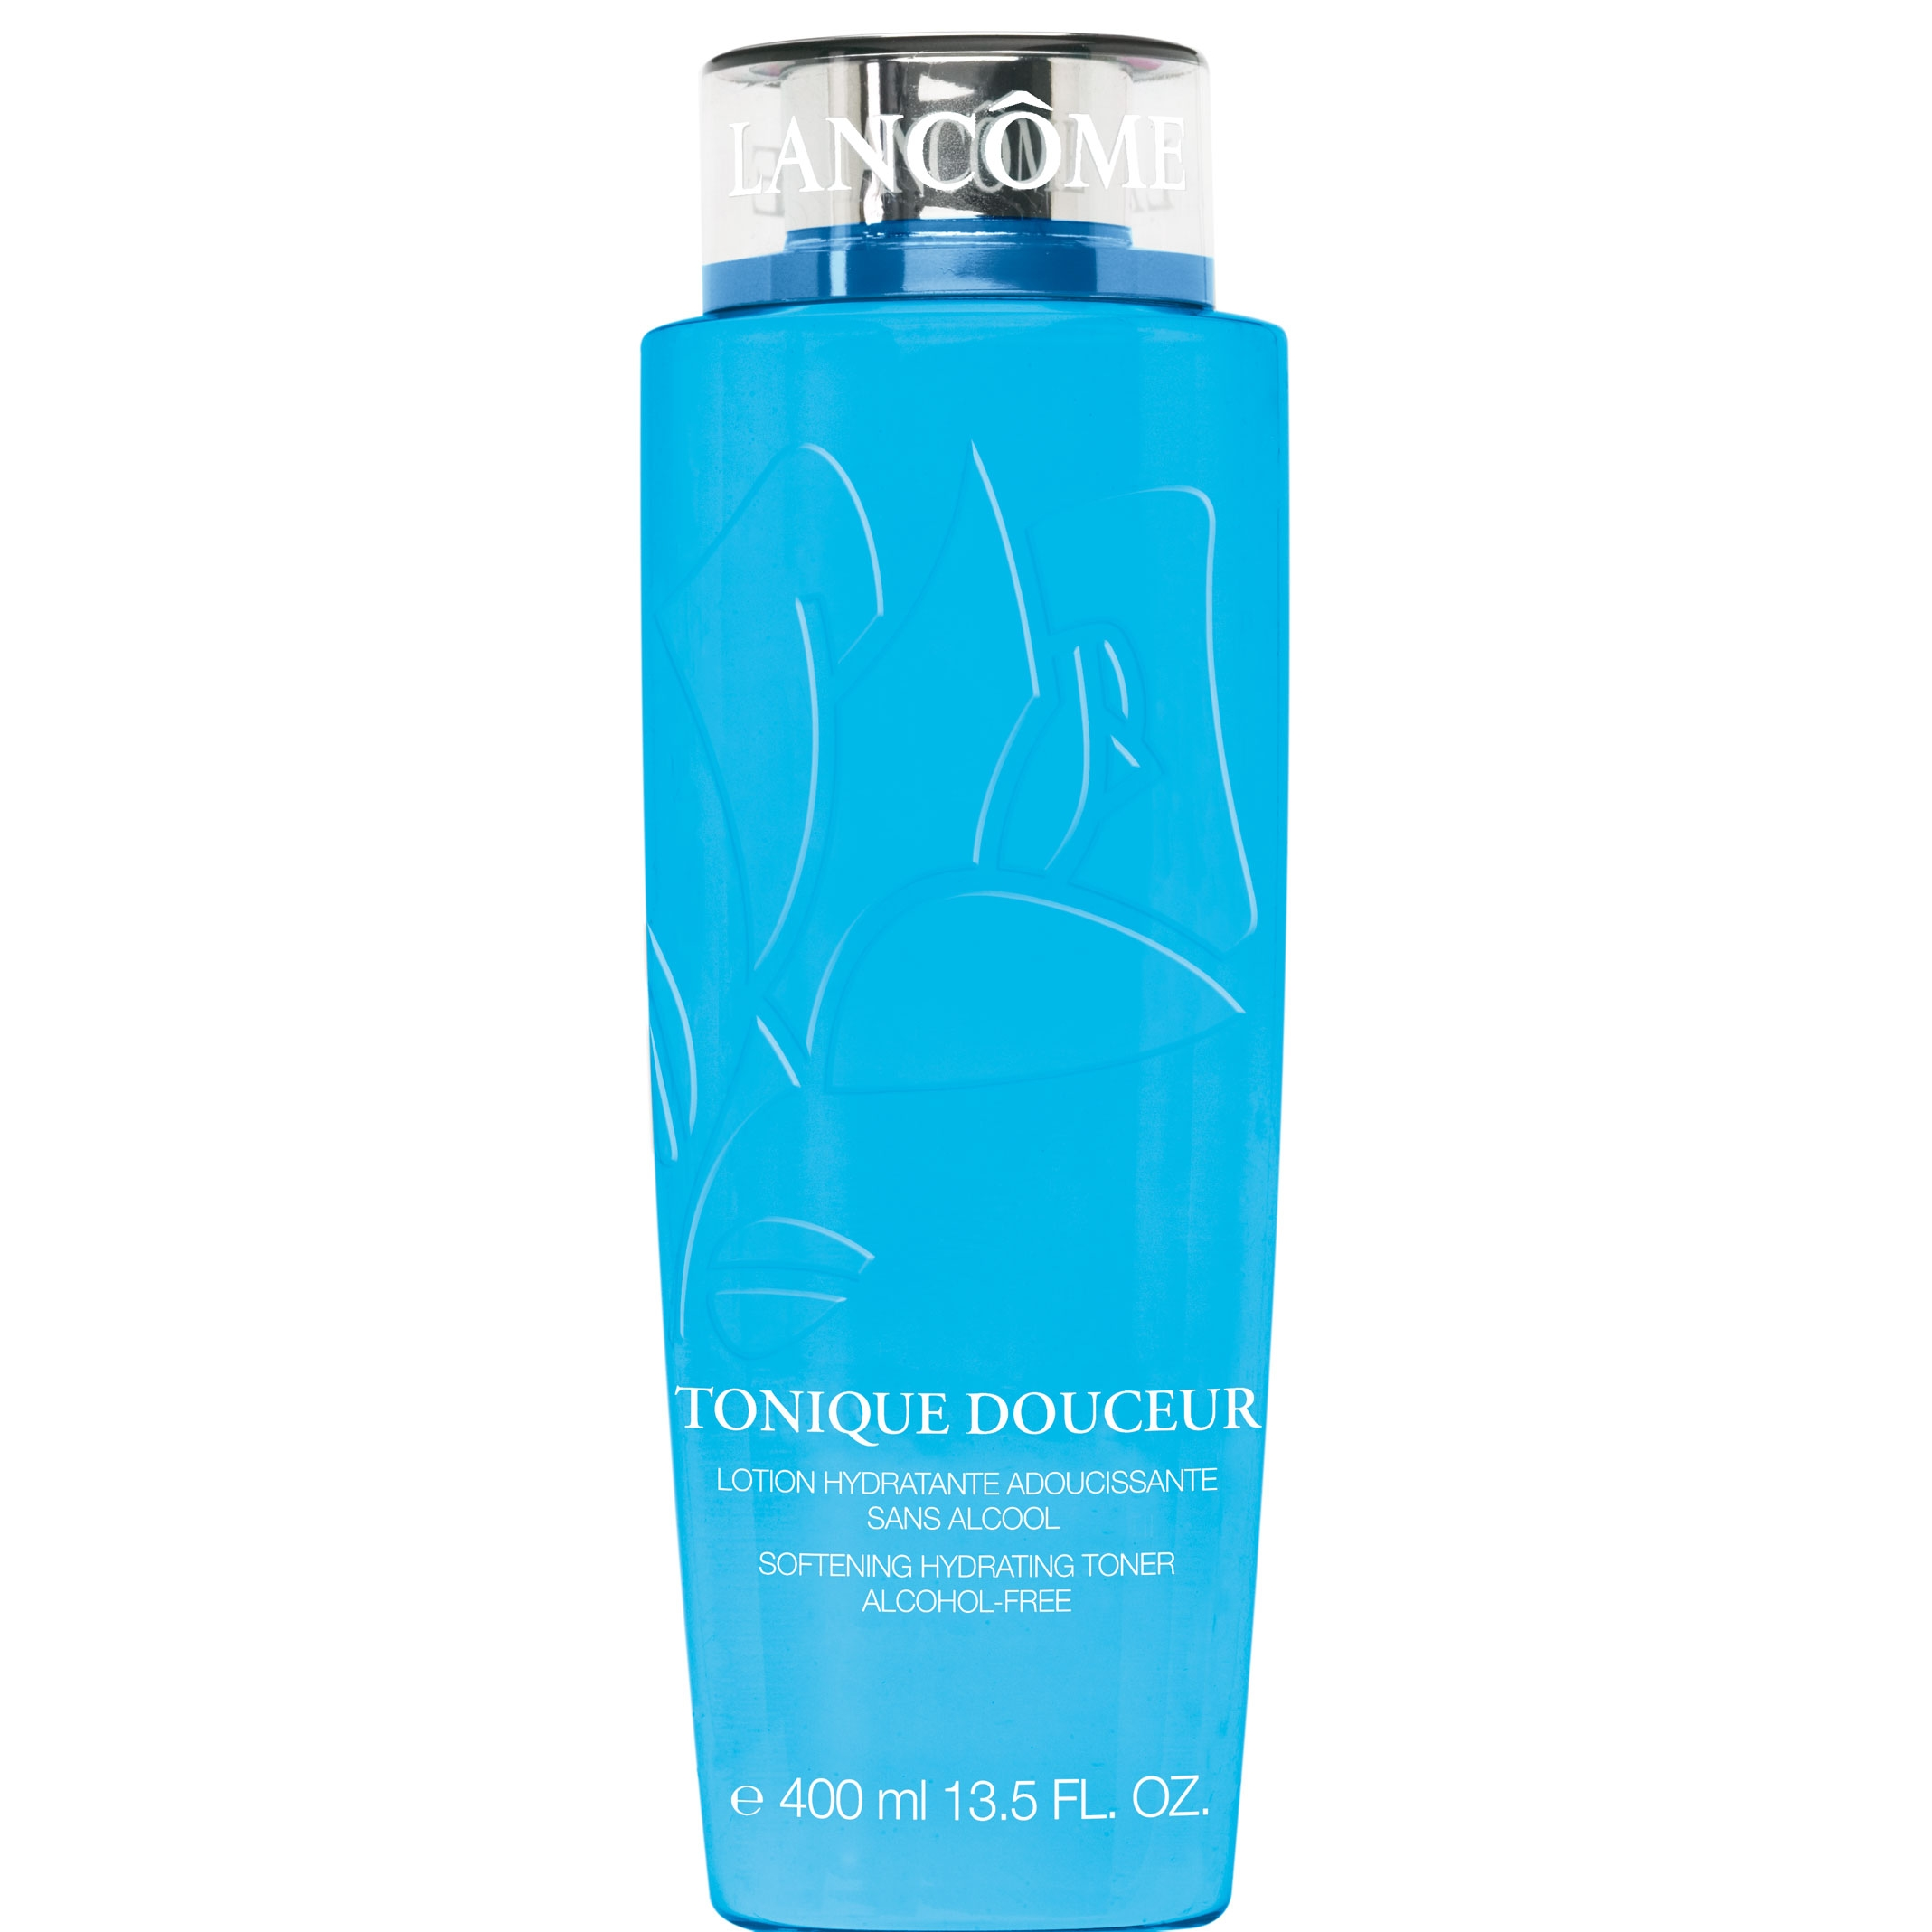 Lancome Tonique Douceur tonico senza alcool 400ml